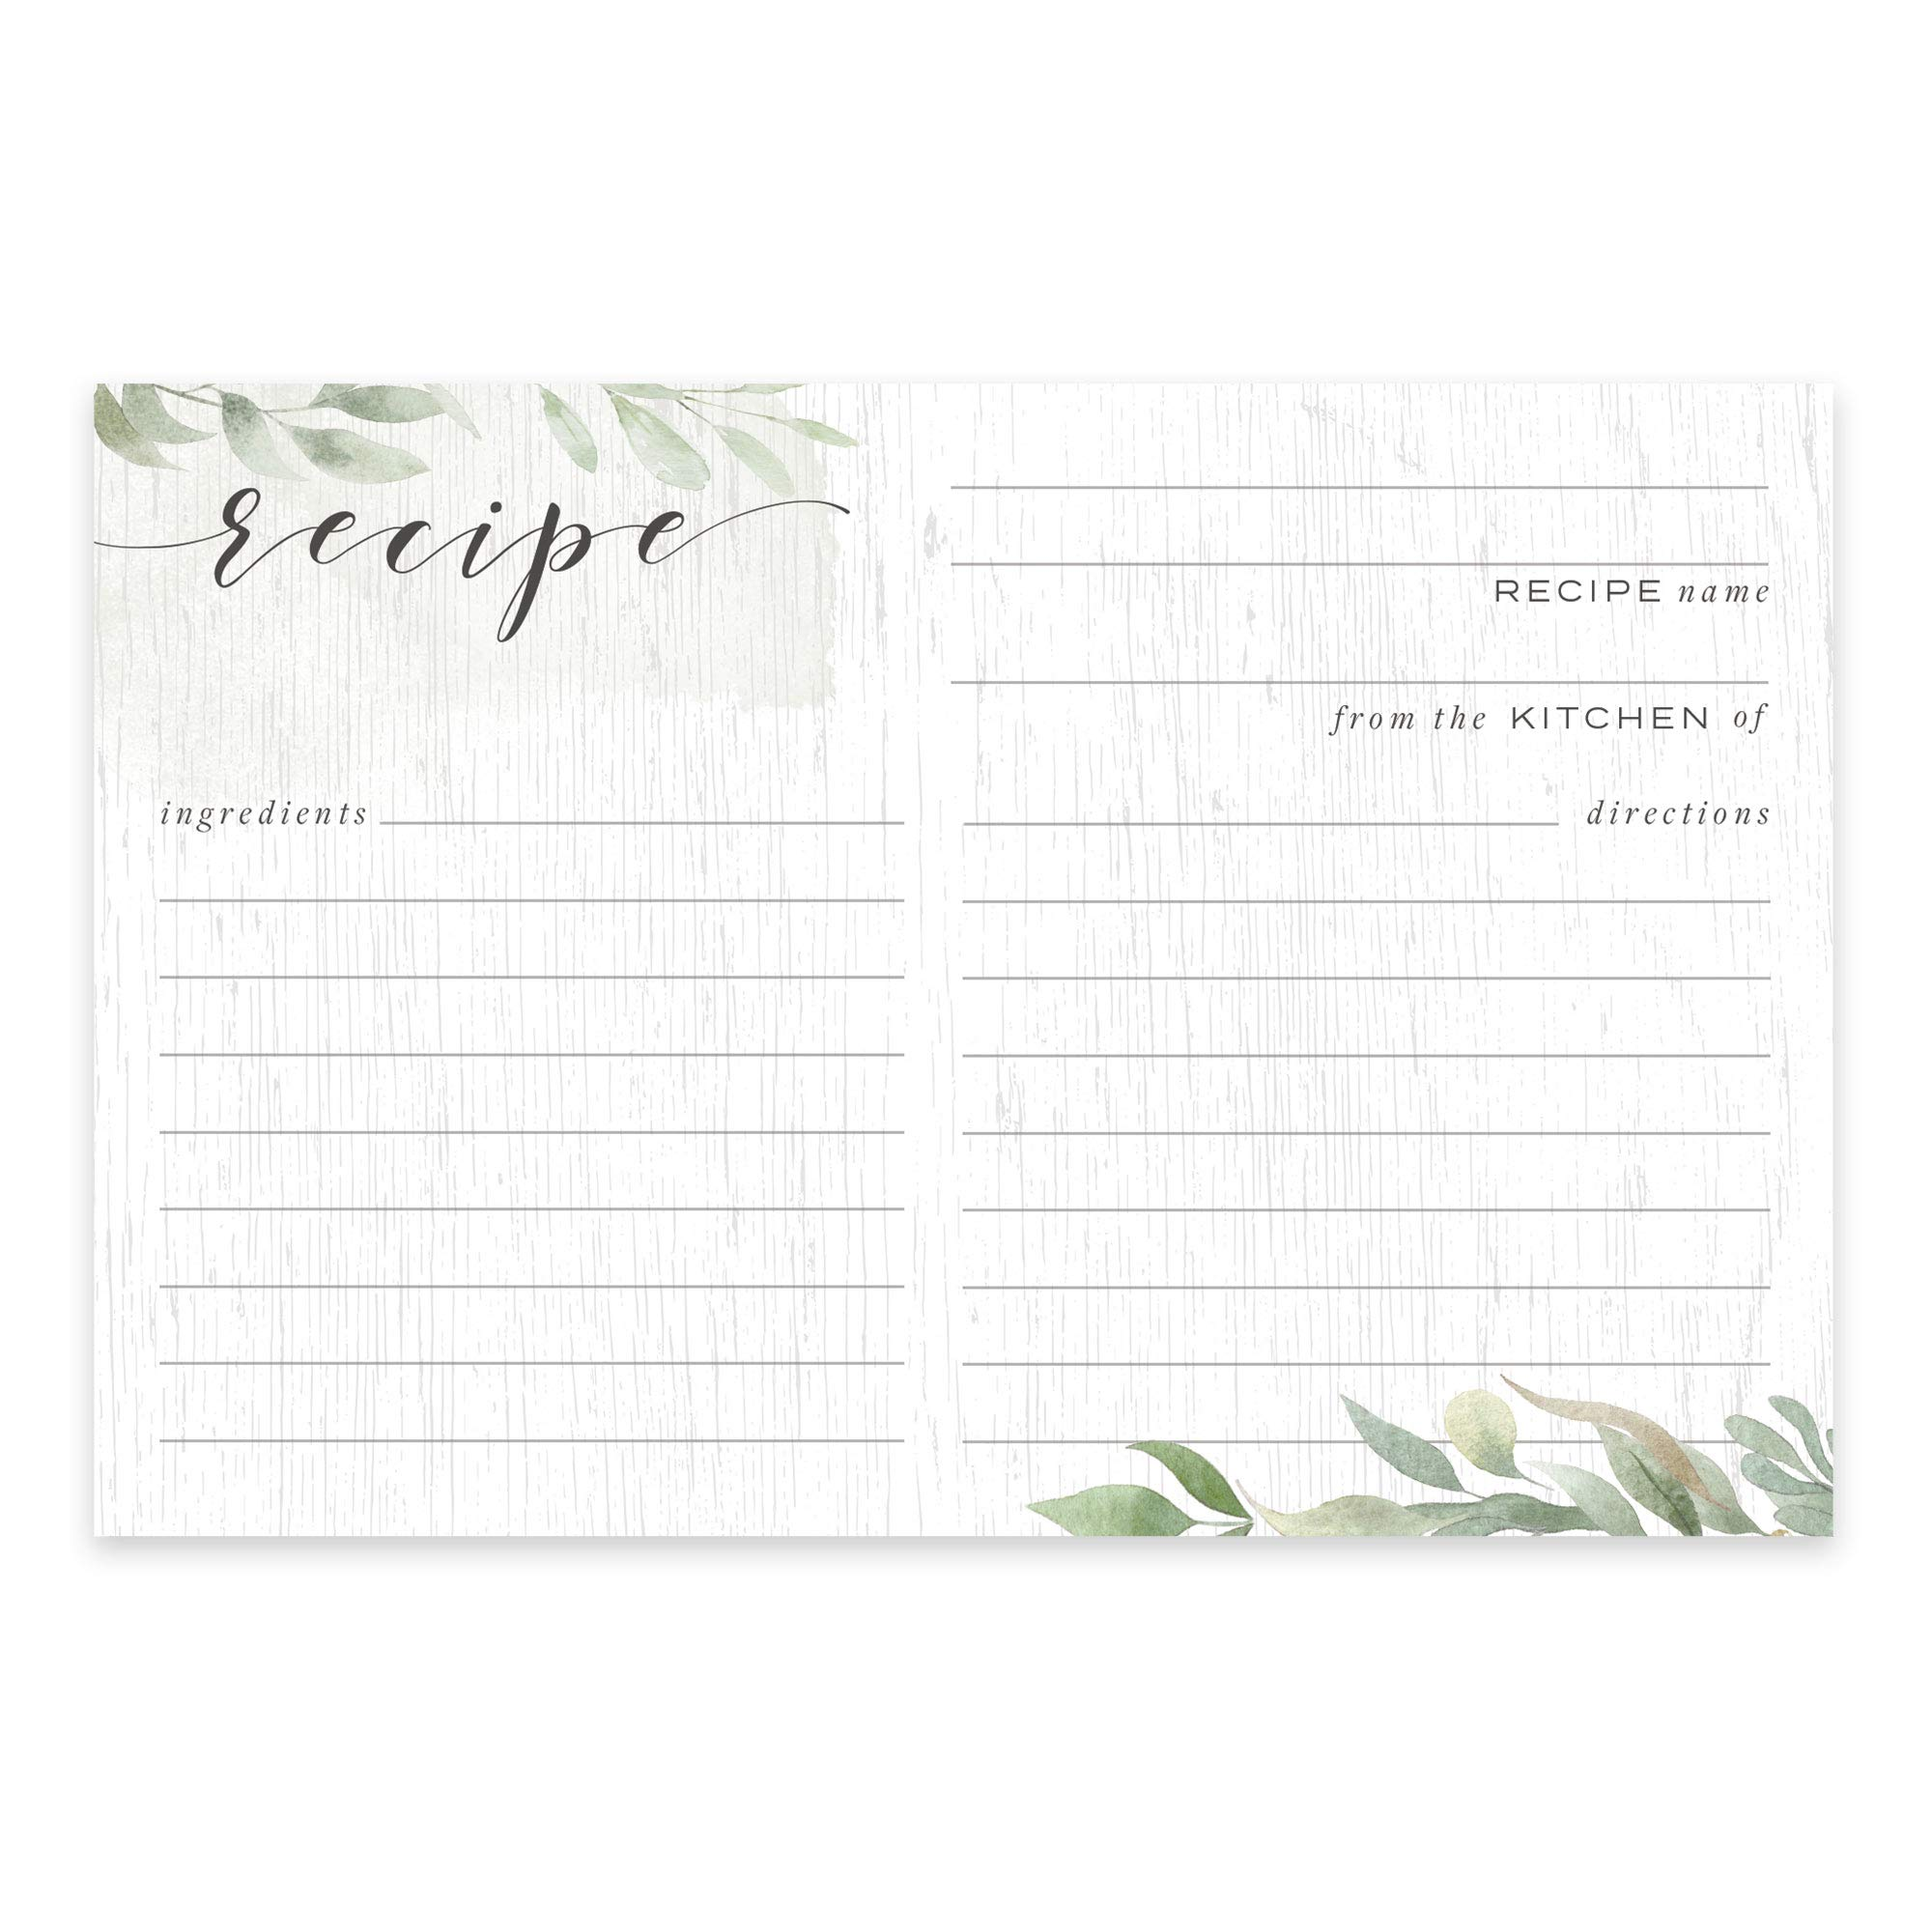 Farmhouse Greenery Recipe Cards from Dashleigh, 48 Cards, 4x6 inches, Sage Green and White, Water-Resistant and Double-Sided (Farmhouse Recipe Cards) by Dashleigh